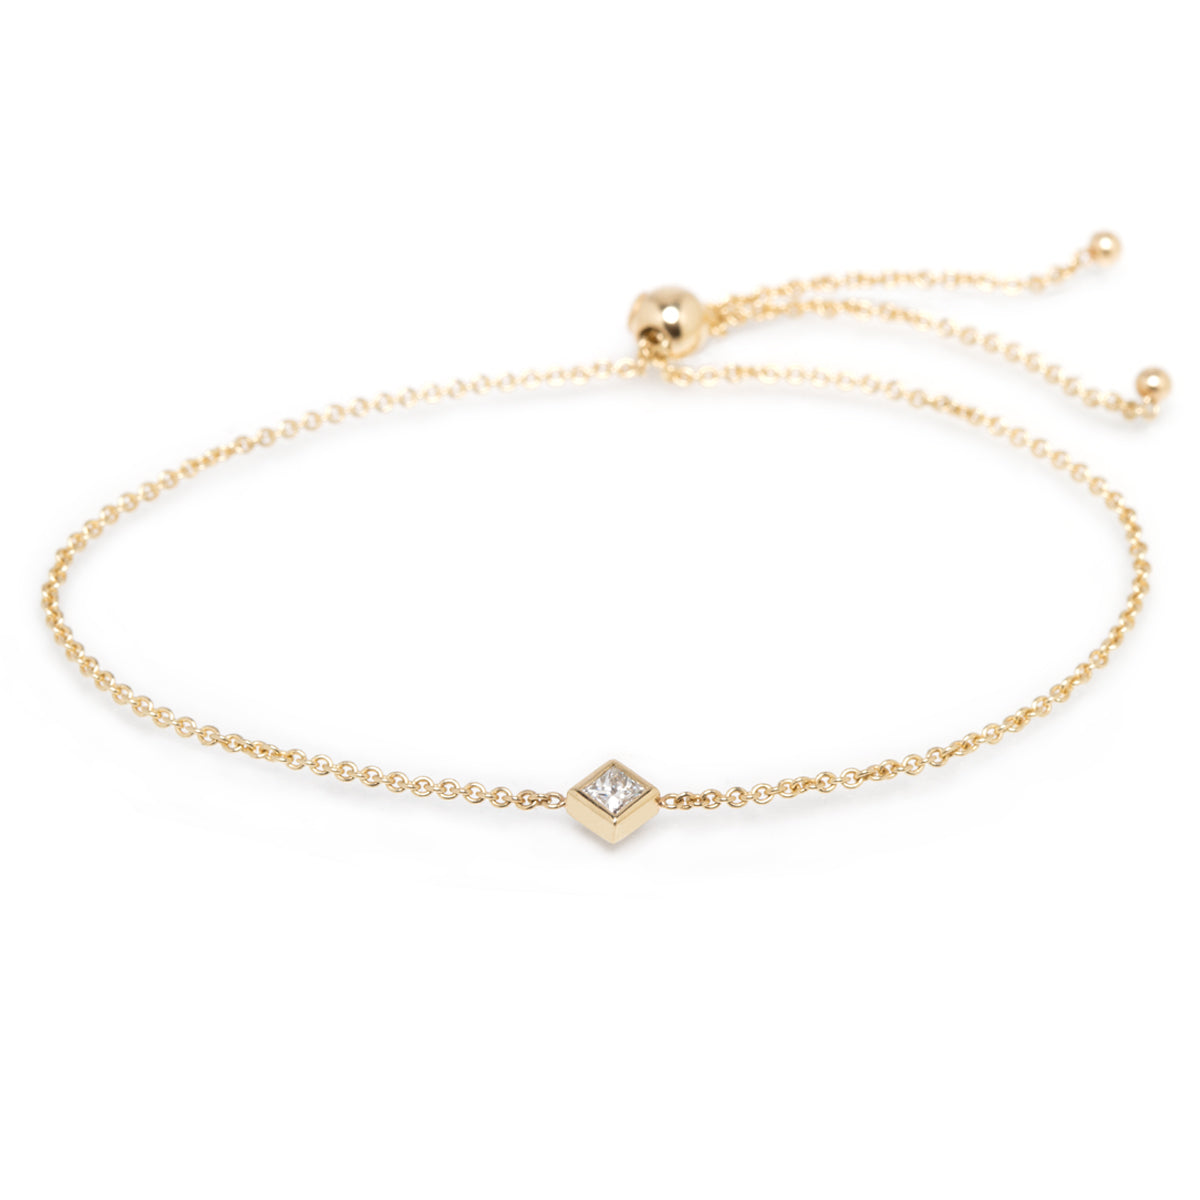 14k princess cut diamond bolo bracelet